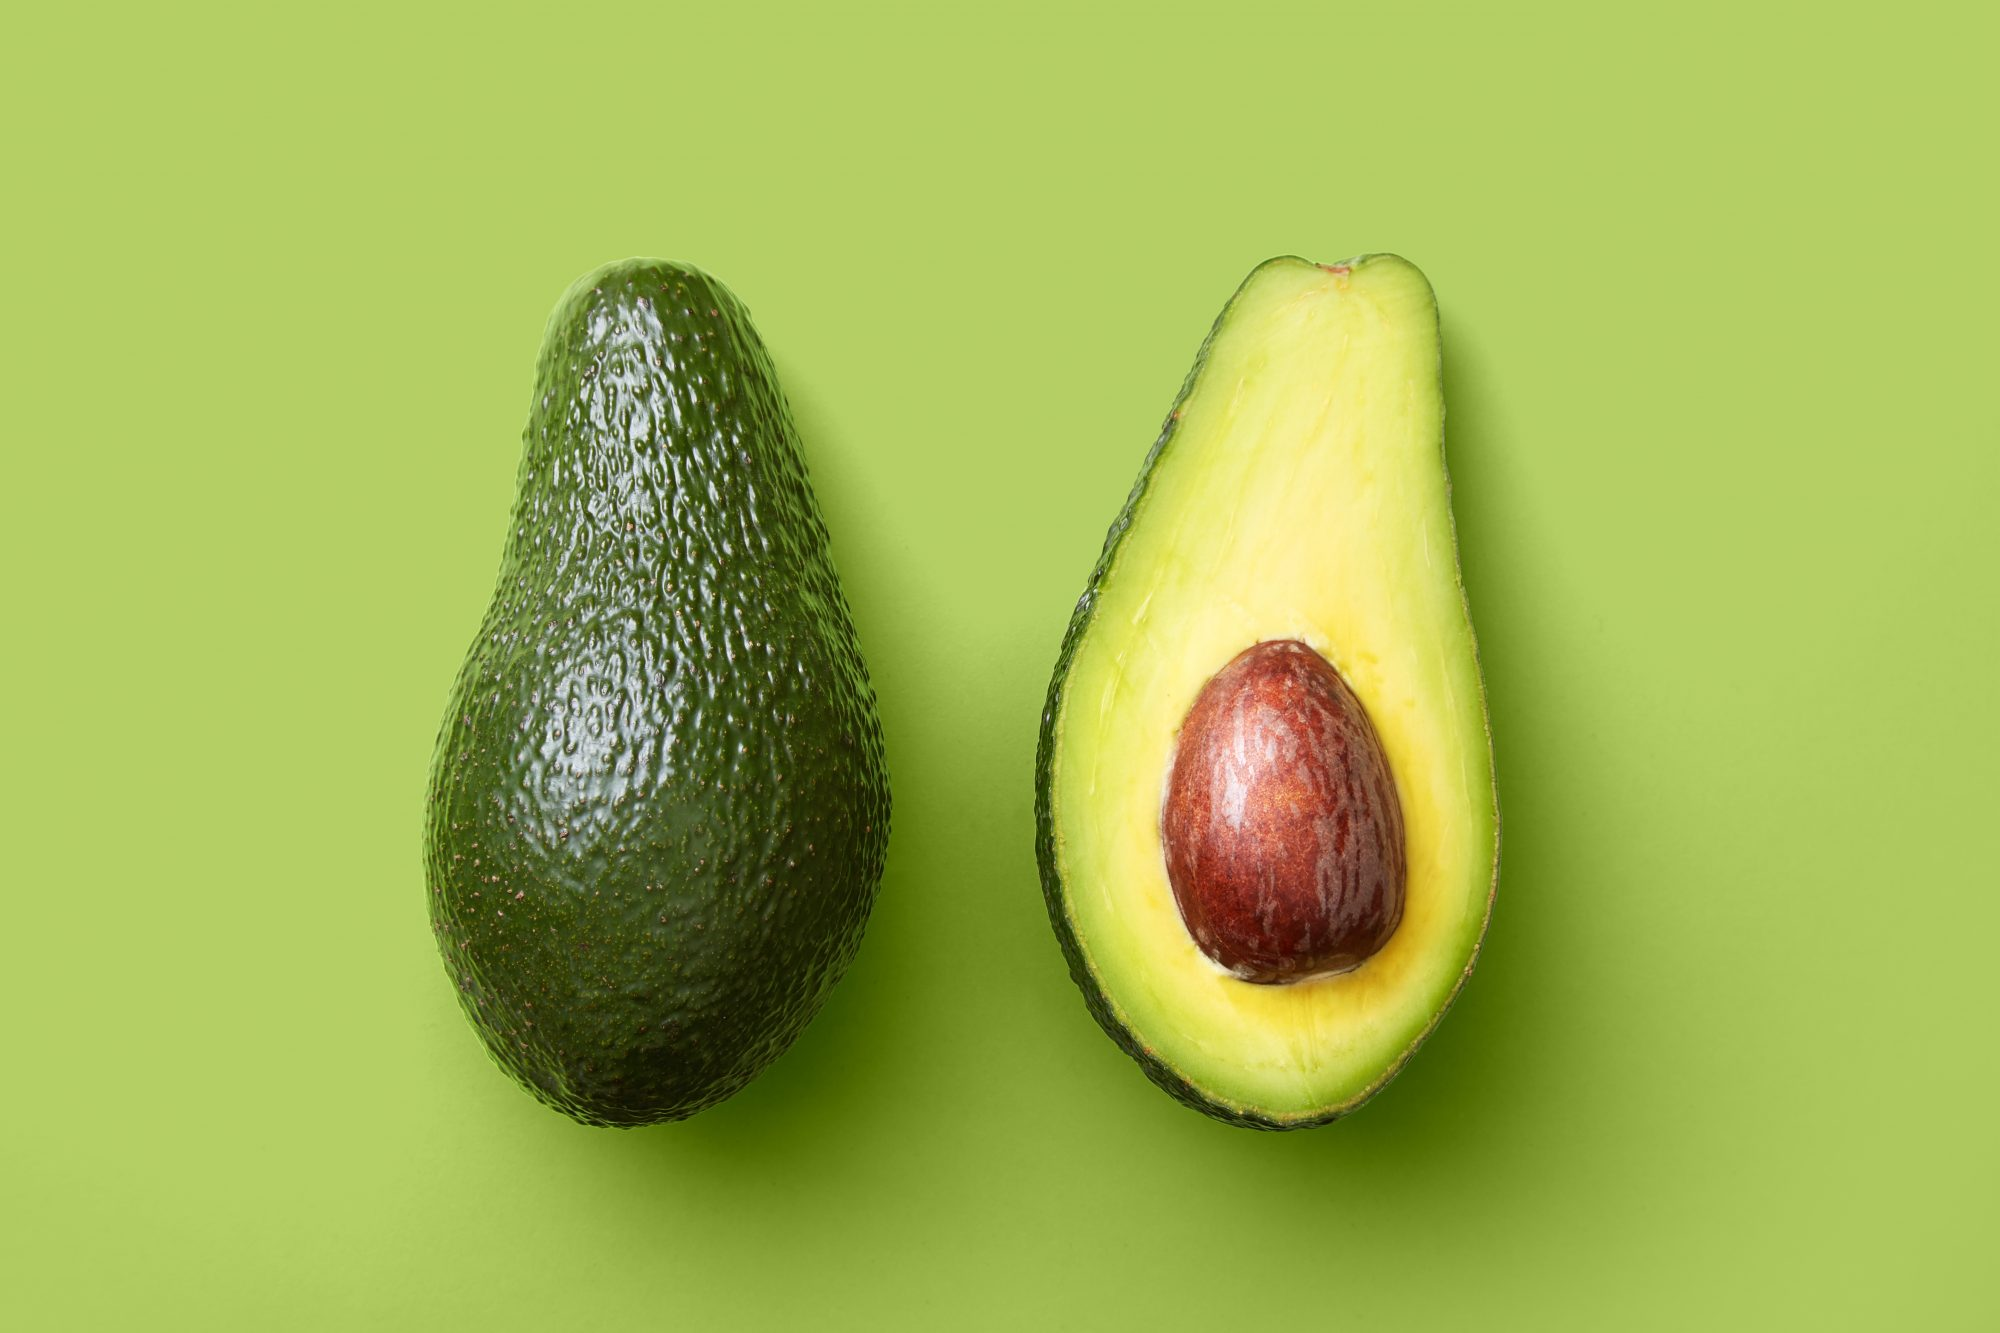 Avocados on green background Getty 4/27/20